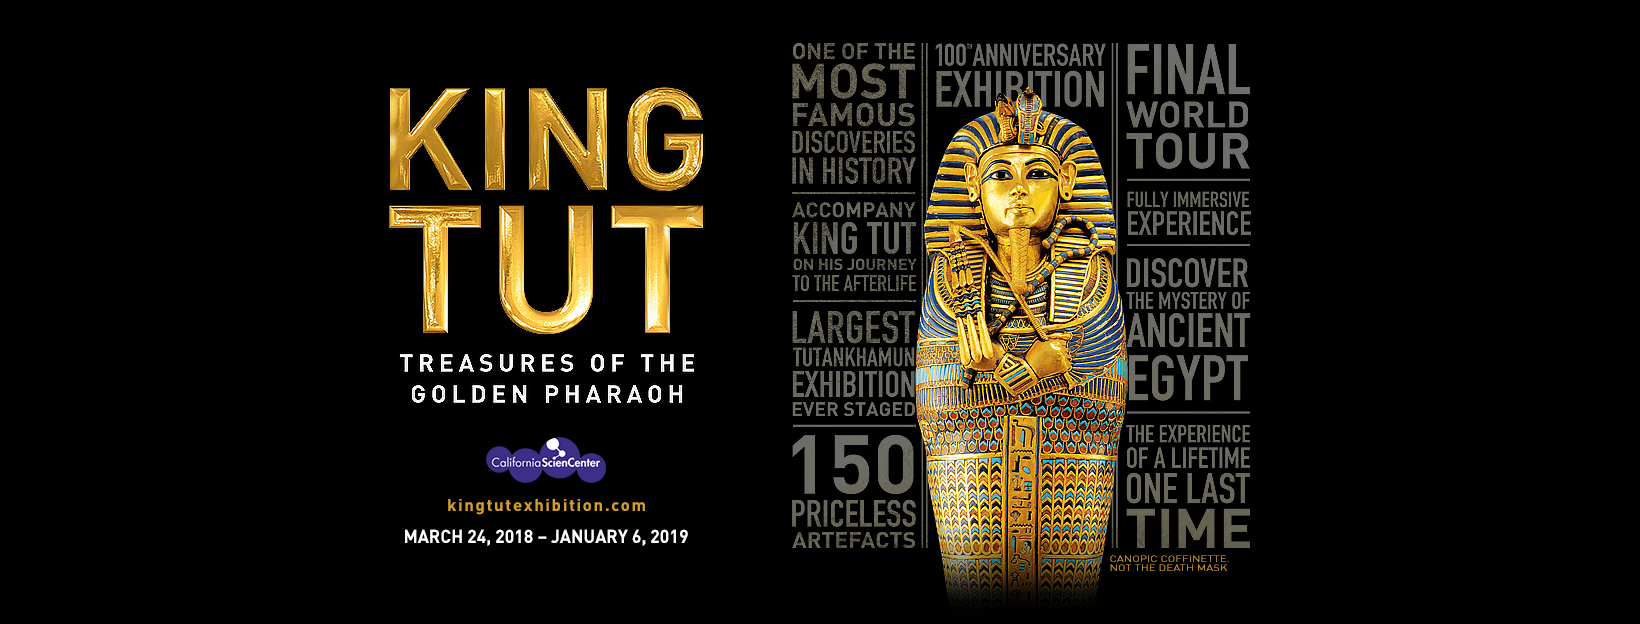 king tut exhibition starts its final world tour in los angeles